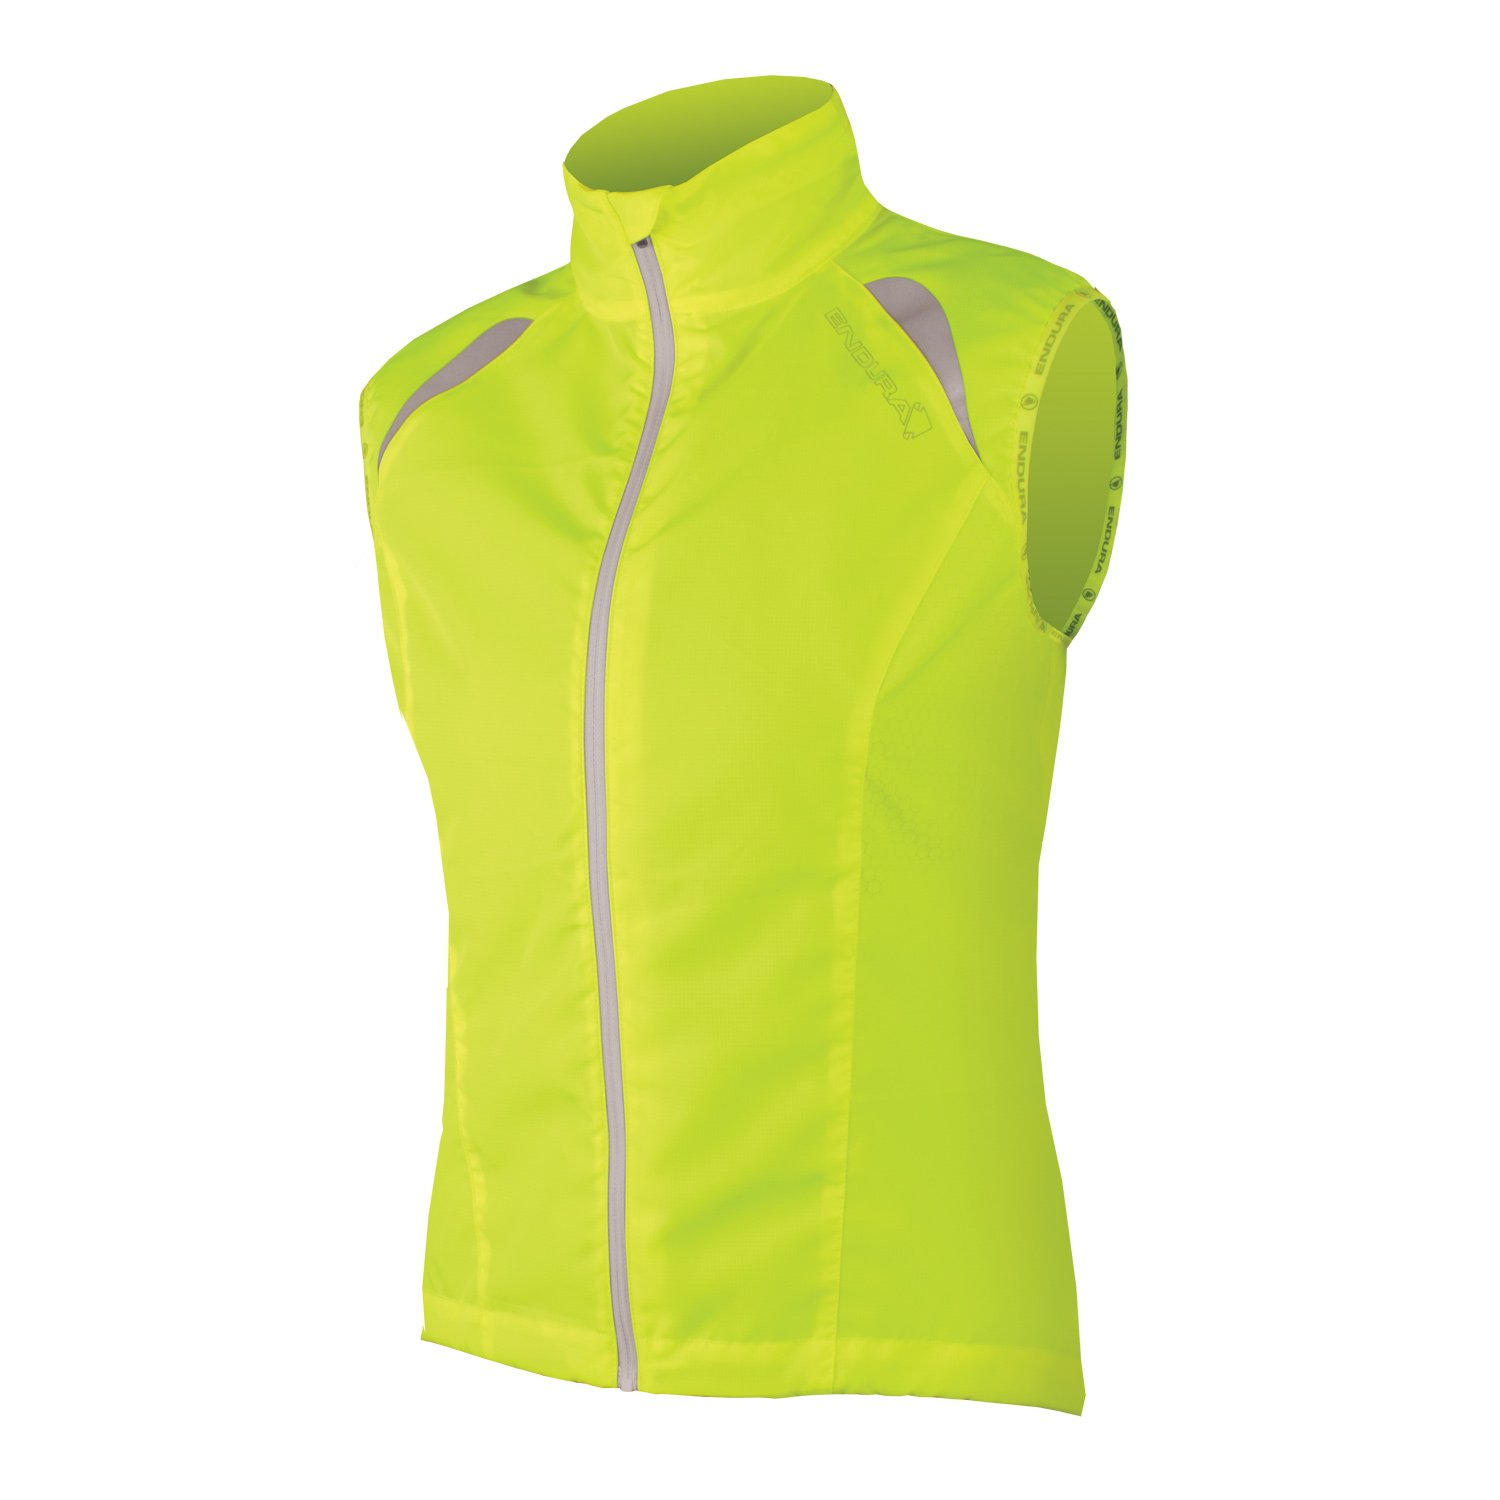 Endura Womens Gridlock Cycling Gilet Hi Vis Yellow, Large